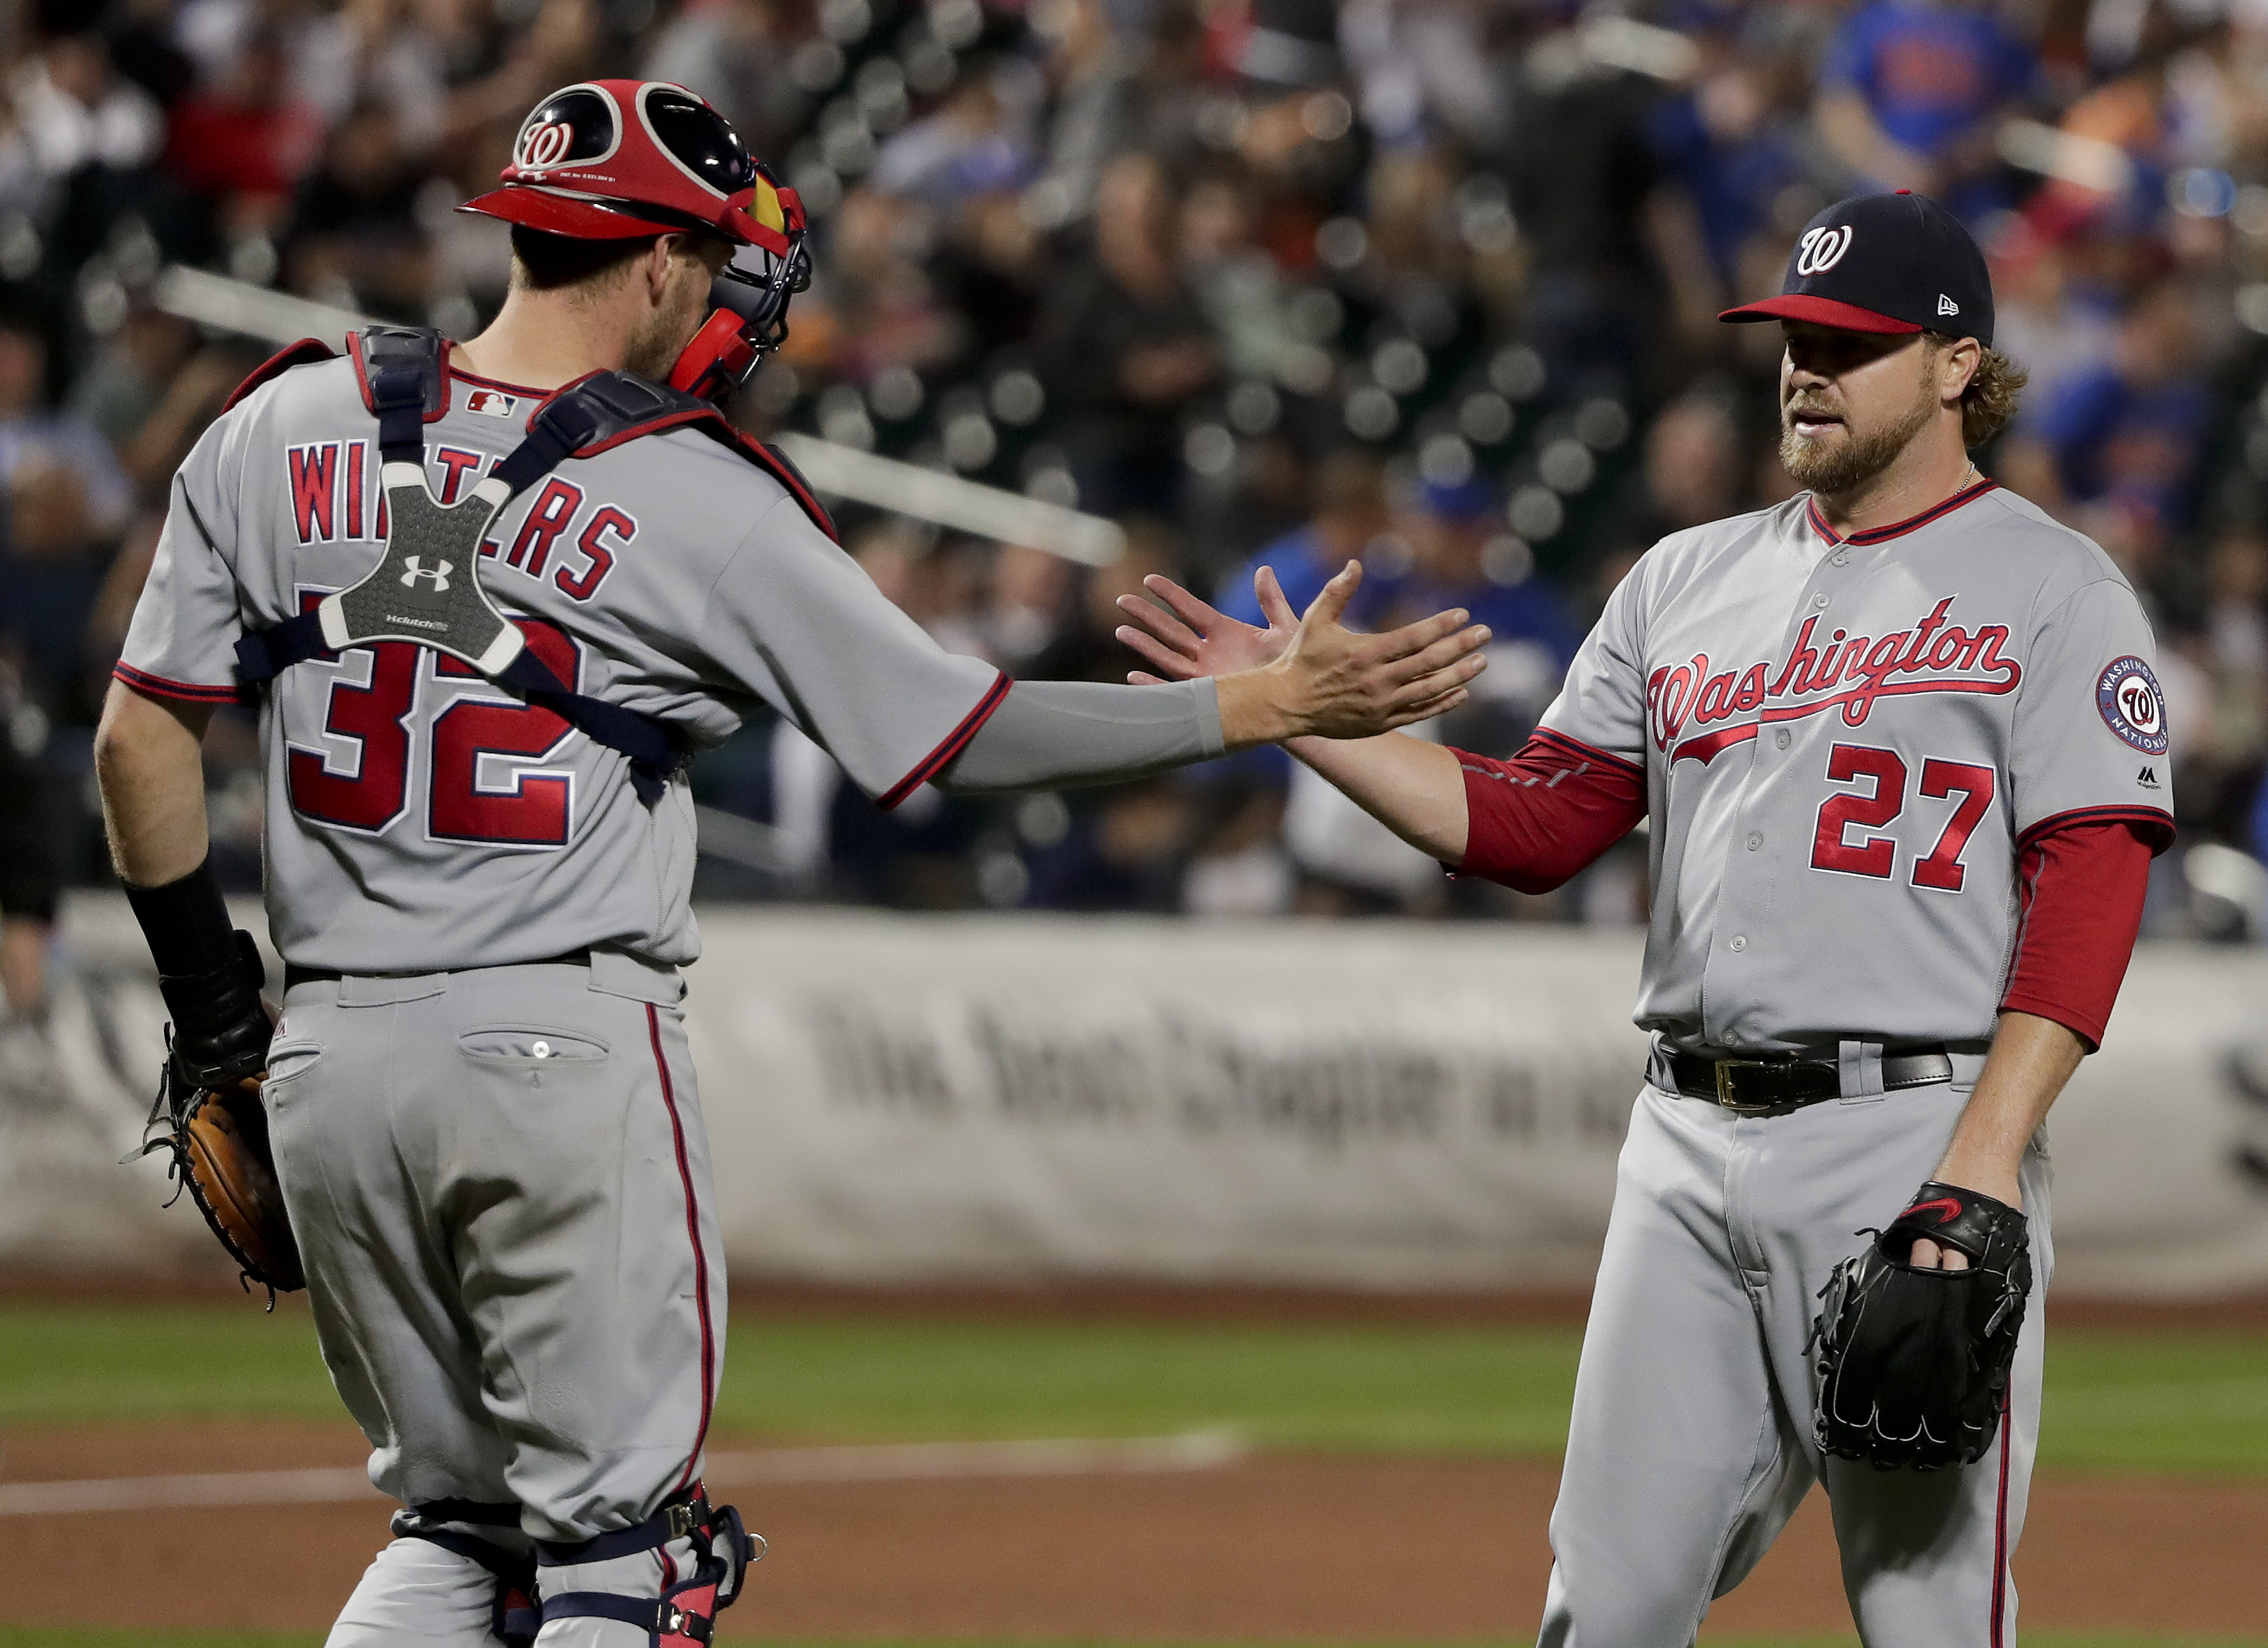 Nationals_mets_baseball_51119.jpg-4177f